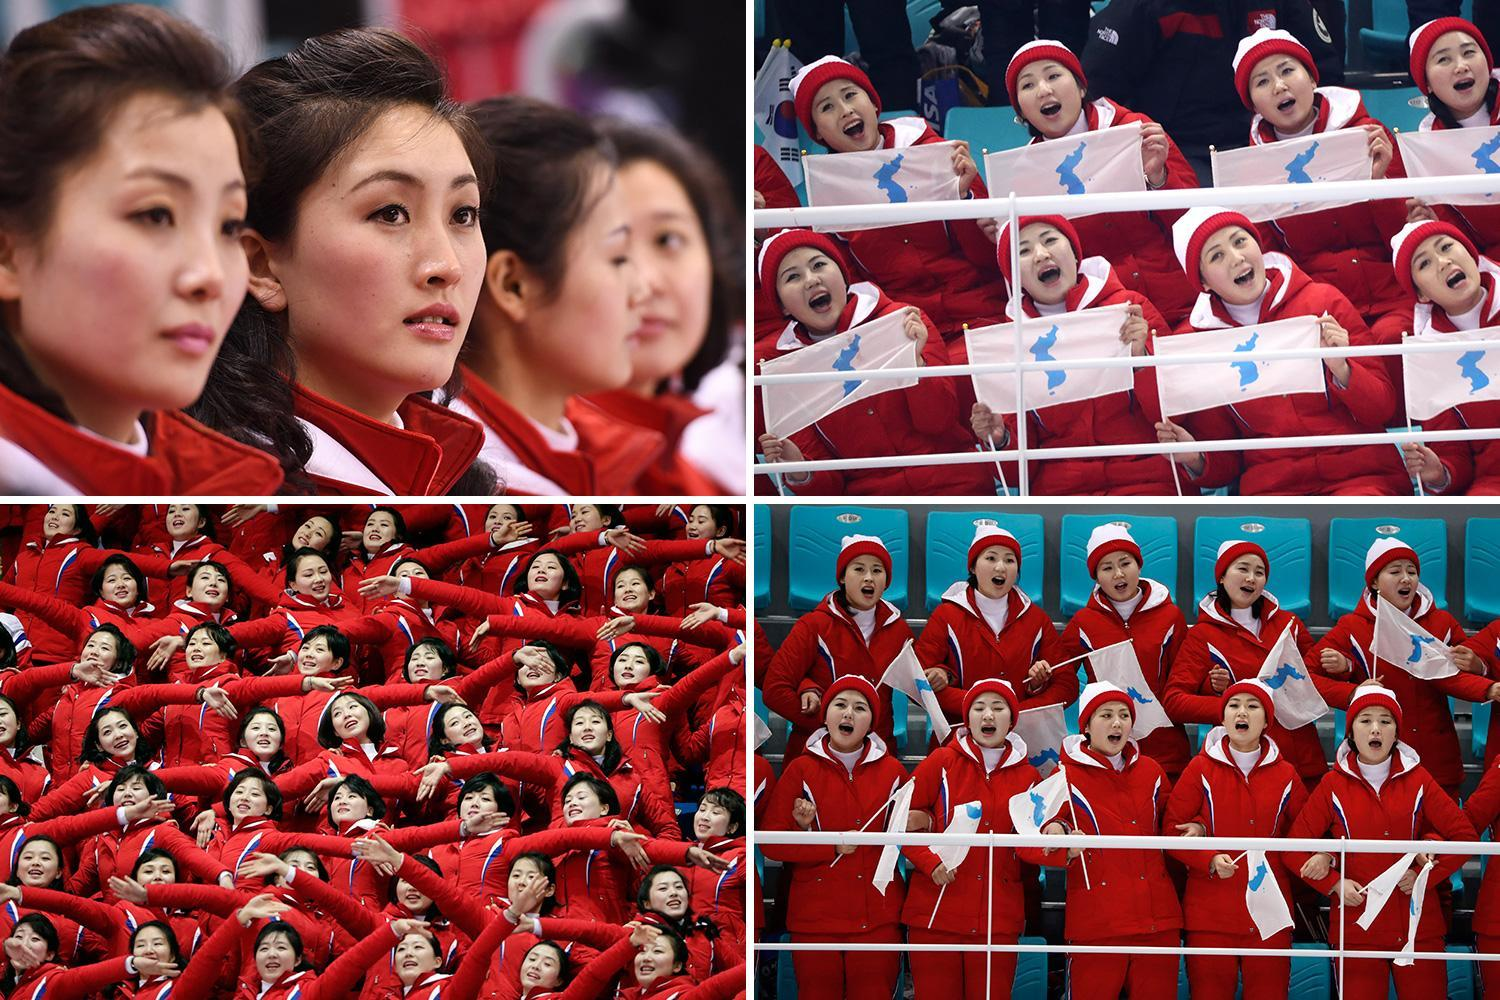 North Korean cheerleaders baffle fans as they chant in perfect sync as united Korean ice hockey team face off in Pyeongchang